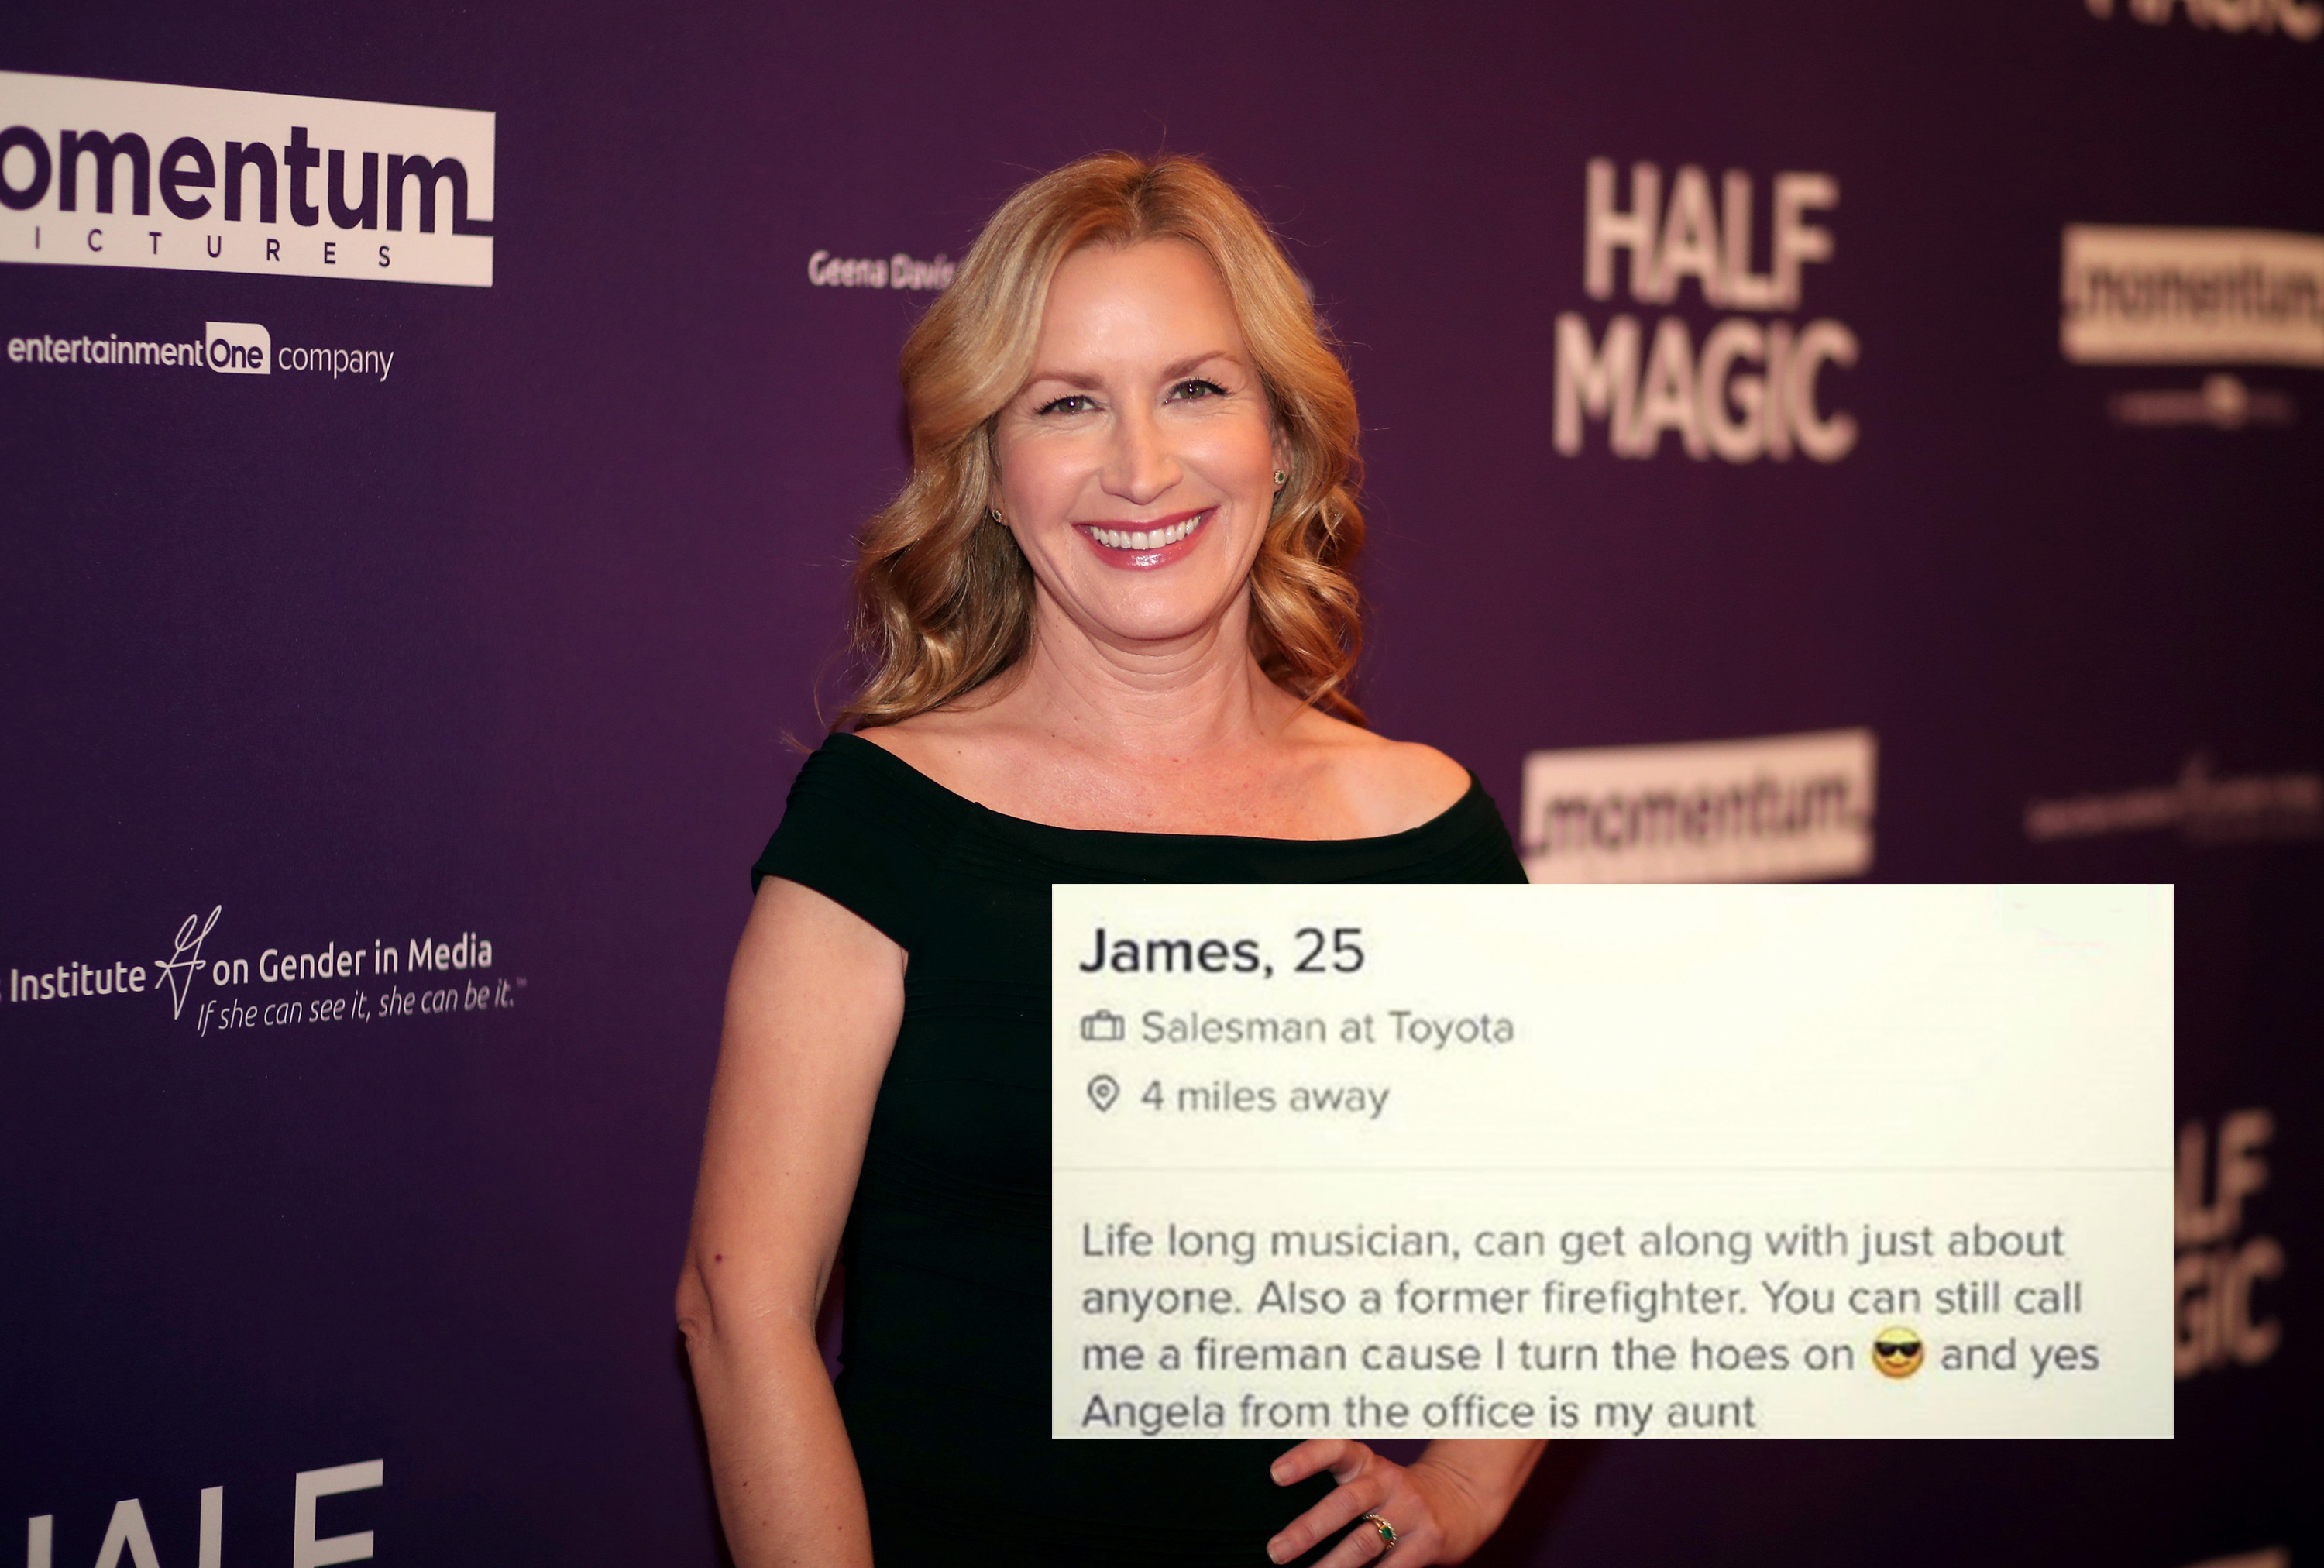 Angela From The Office Called Out Her Nephew For His Tinder Photo